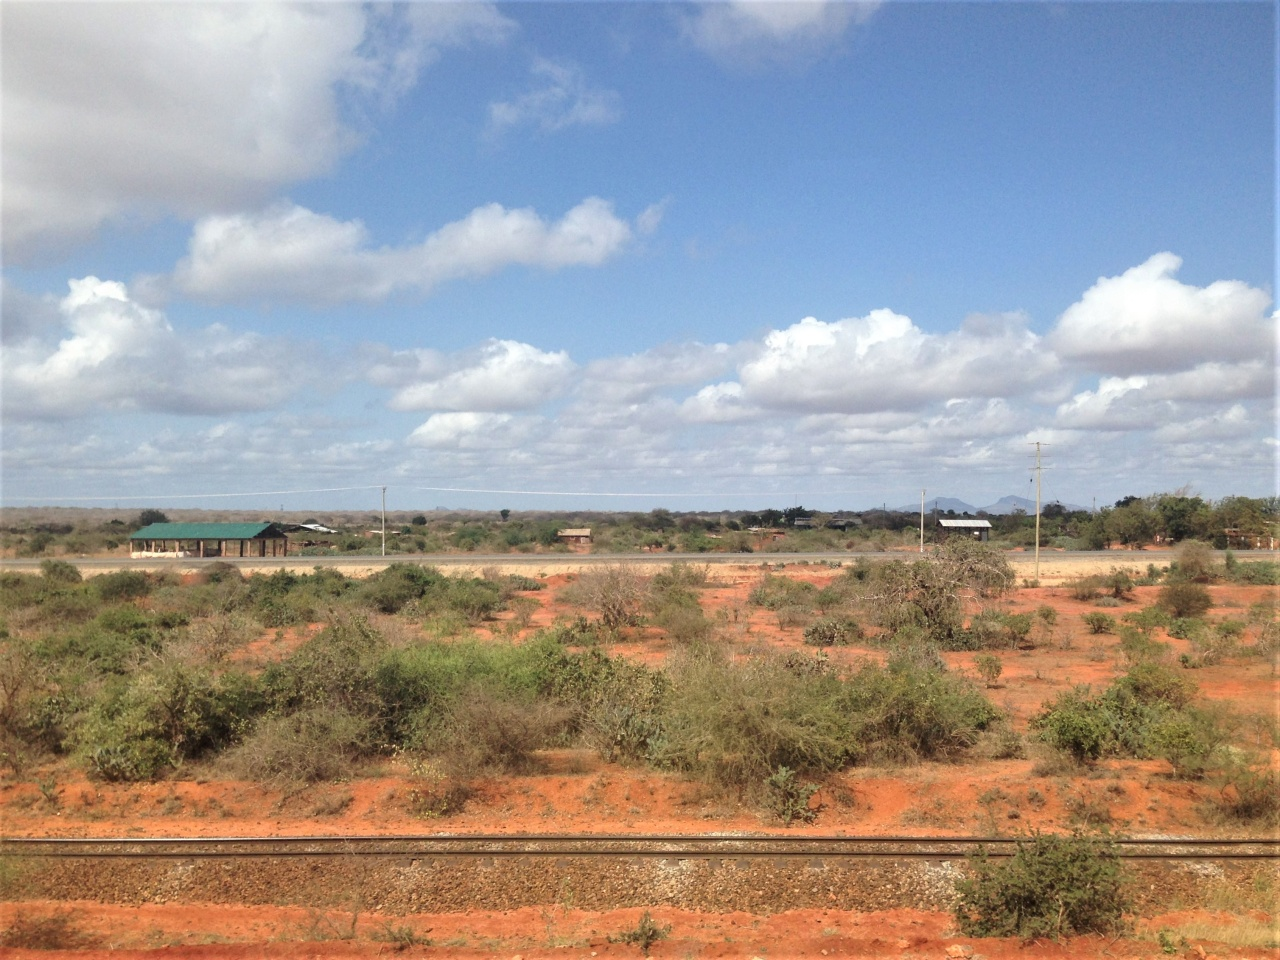 For miles at a time, the SGR faces the now defunct Kenya-Uganda Railway tracks.